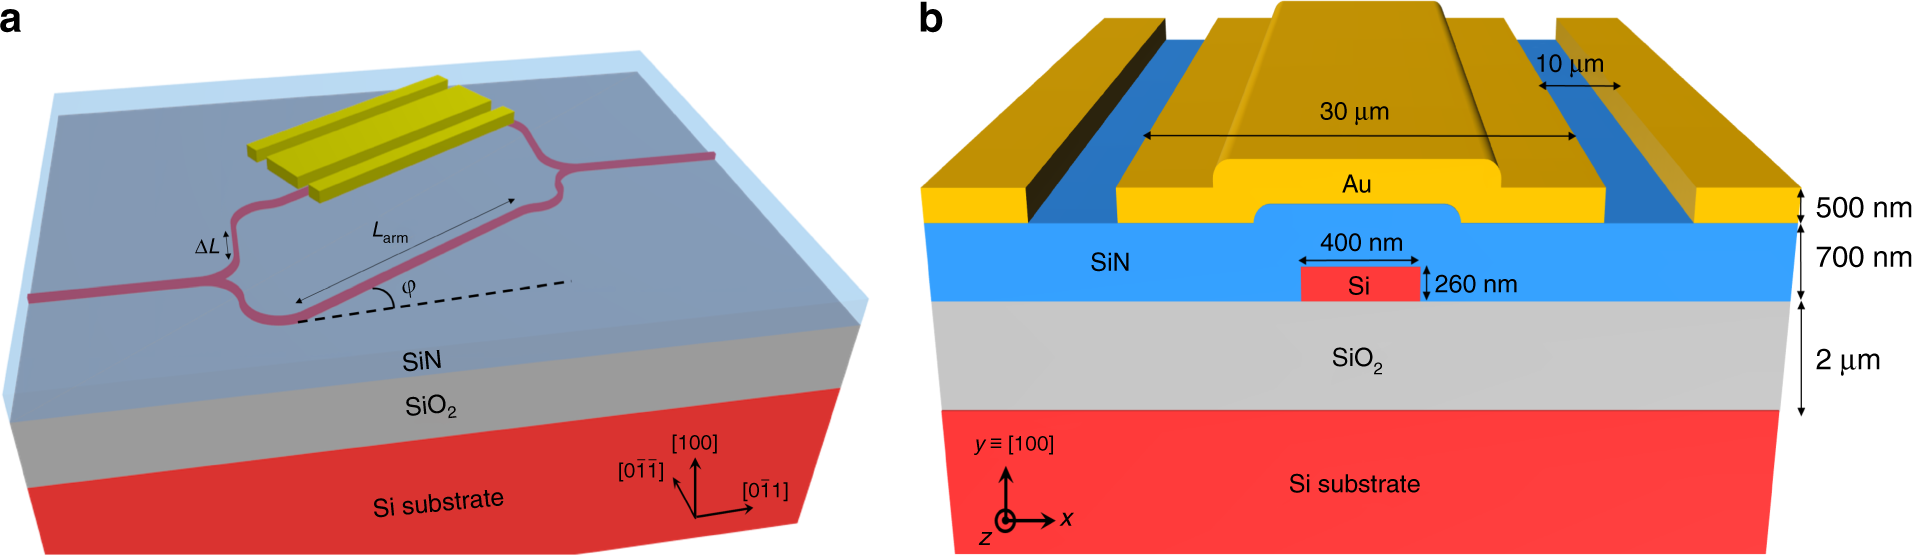 Fast linear electro-optic effect in a centrosymmetric